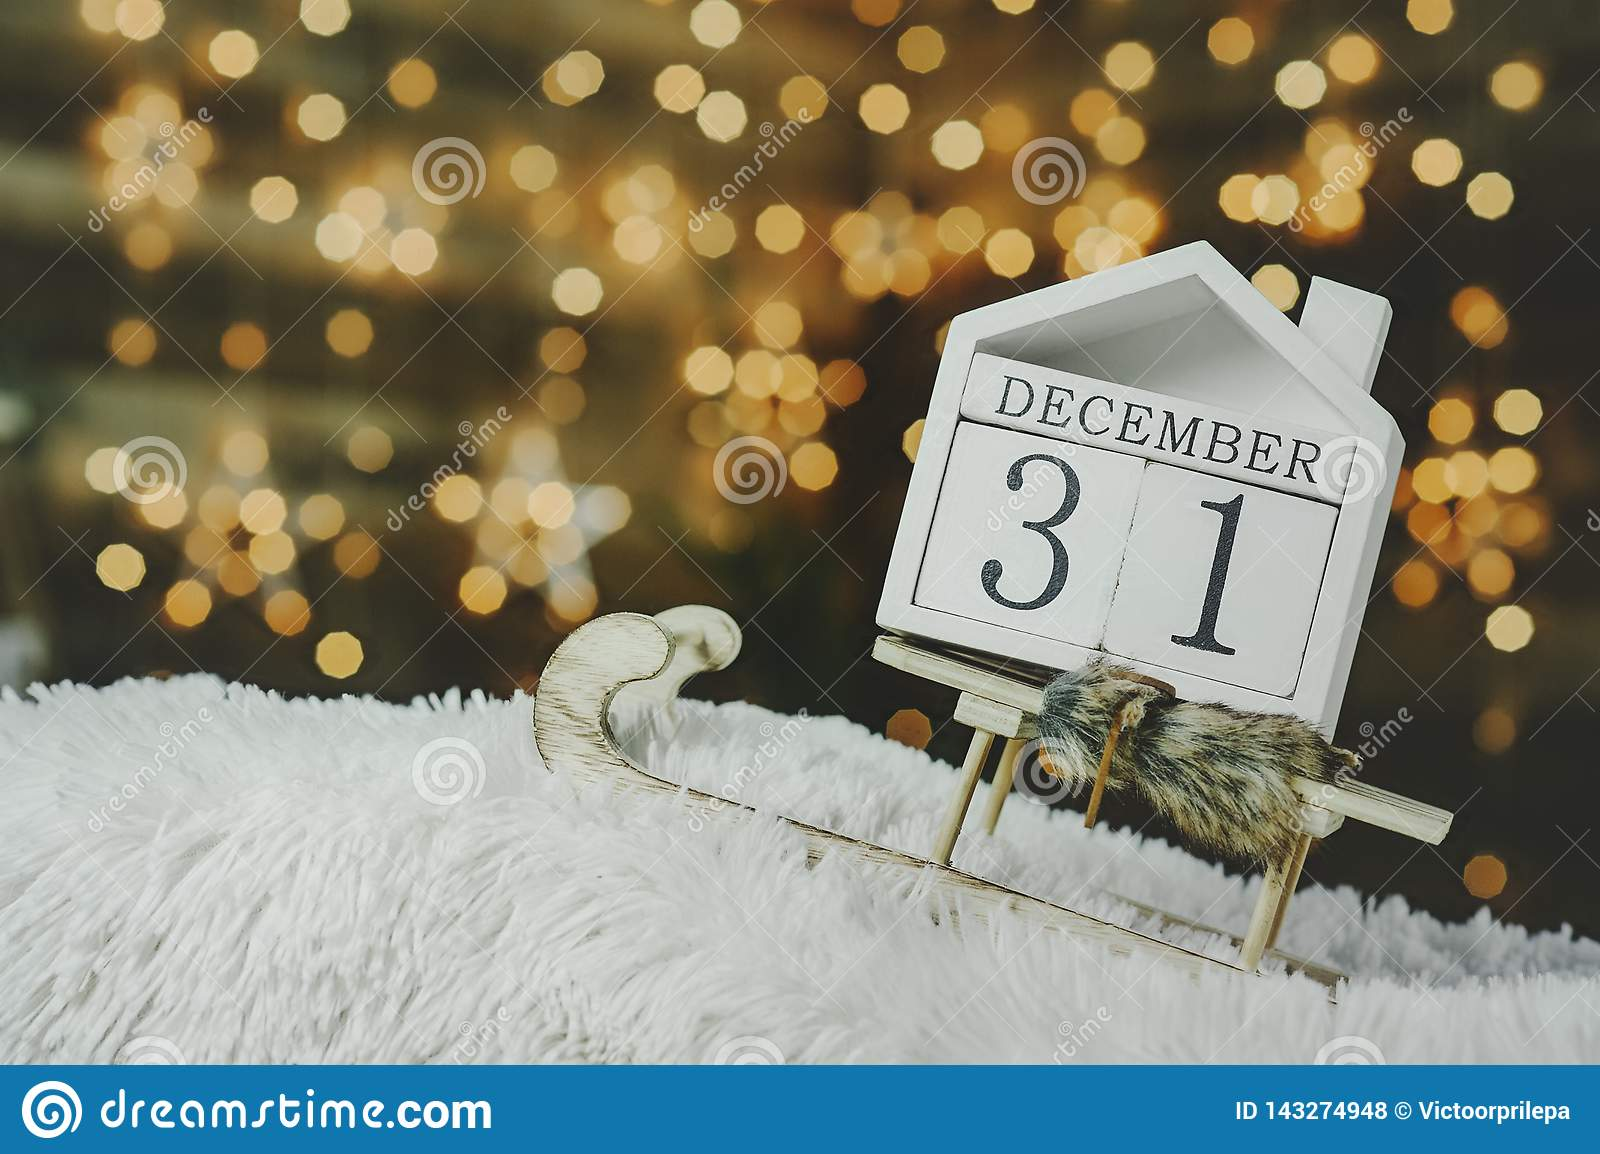 Festive background on the eve of the new year, with a countdown calendar on December 31 on the background of luminous